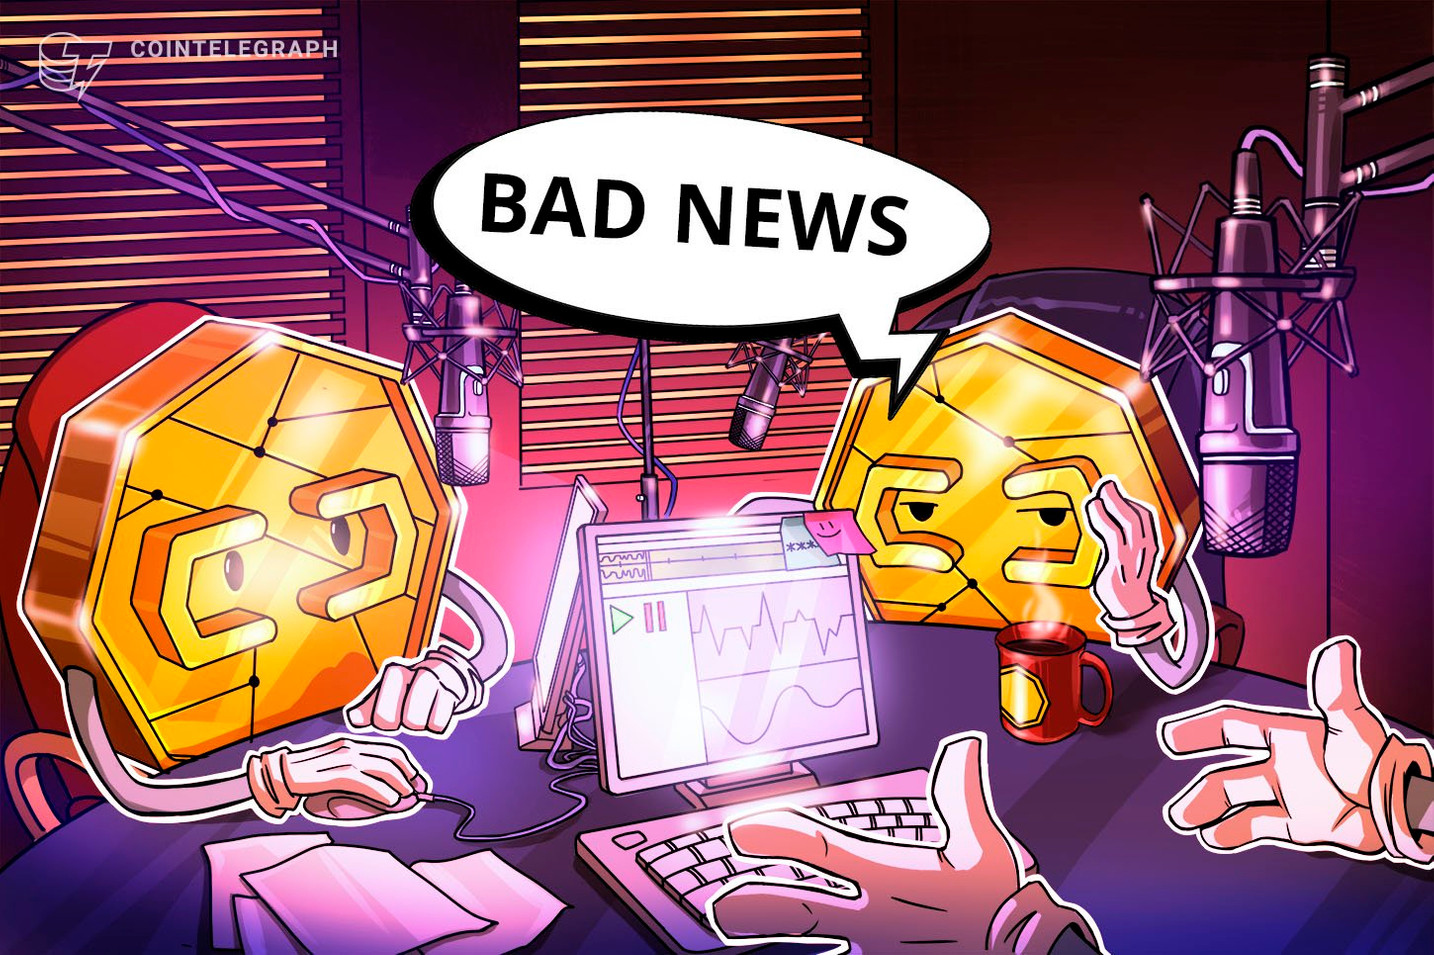 Wright Decision & Paypal Allowing Crypto: Bad Crypto News of the Week